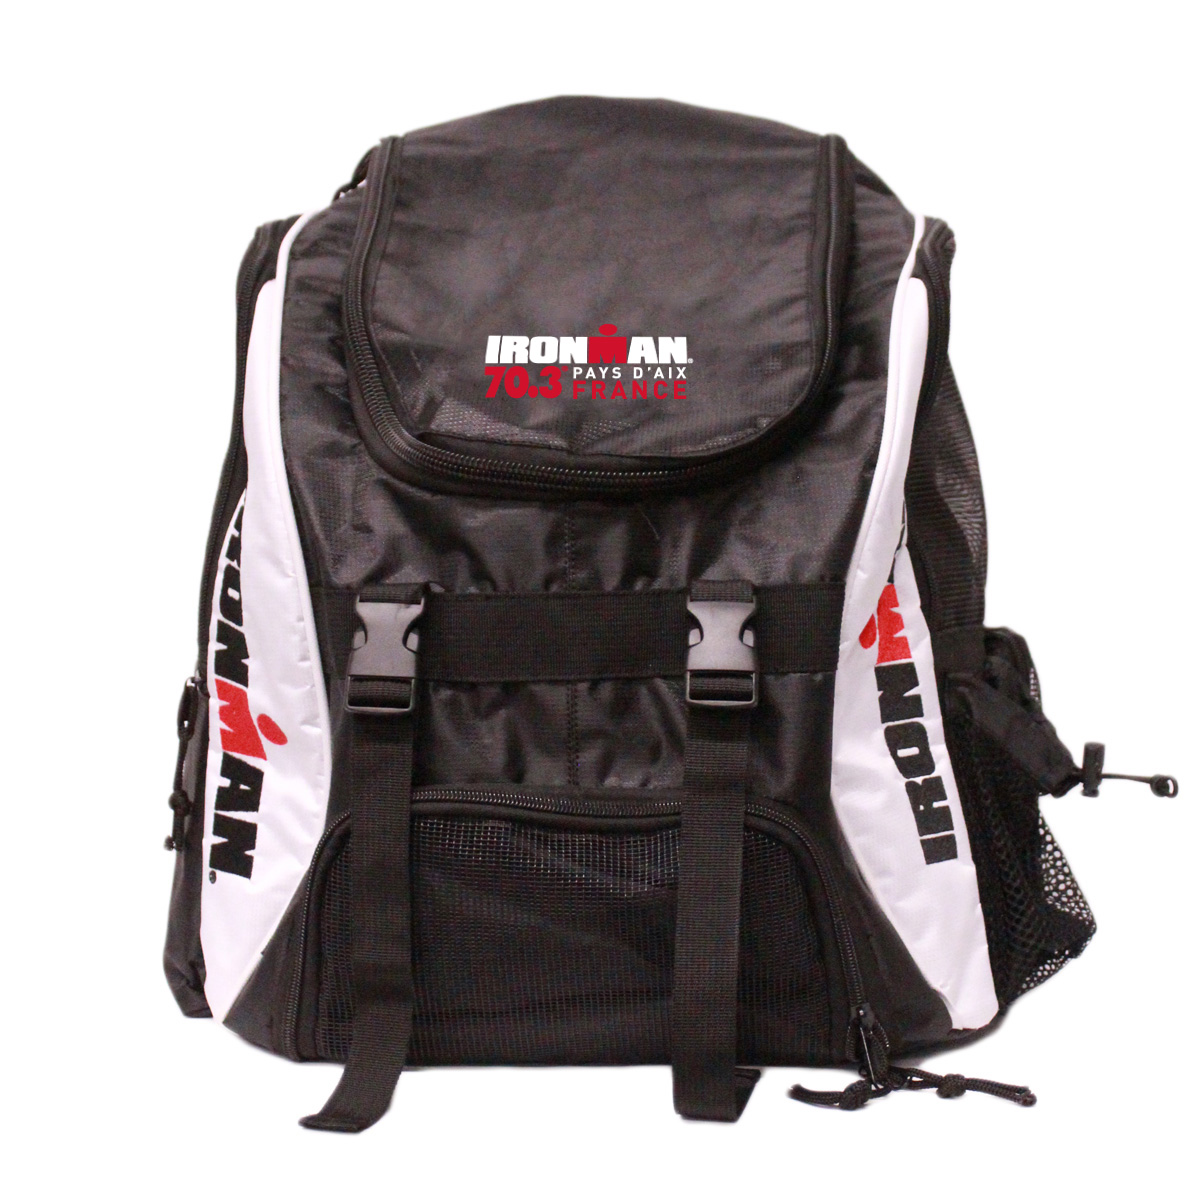 IRONMAN 70.3 Pays d'Aix 2019 Event Backpack